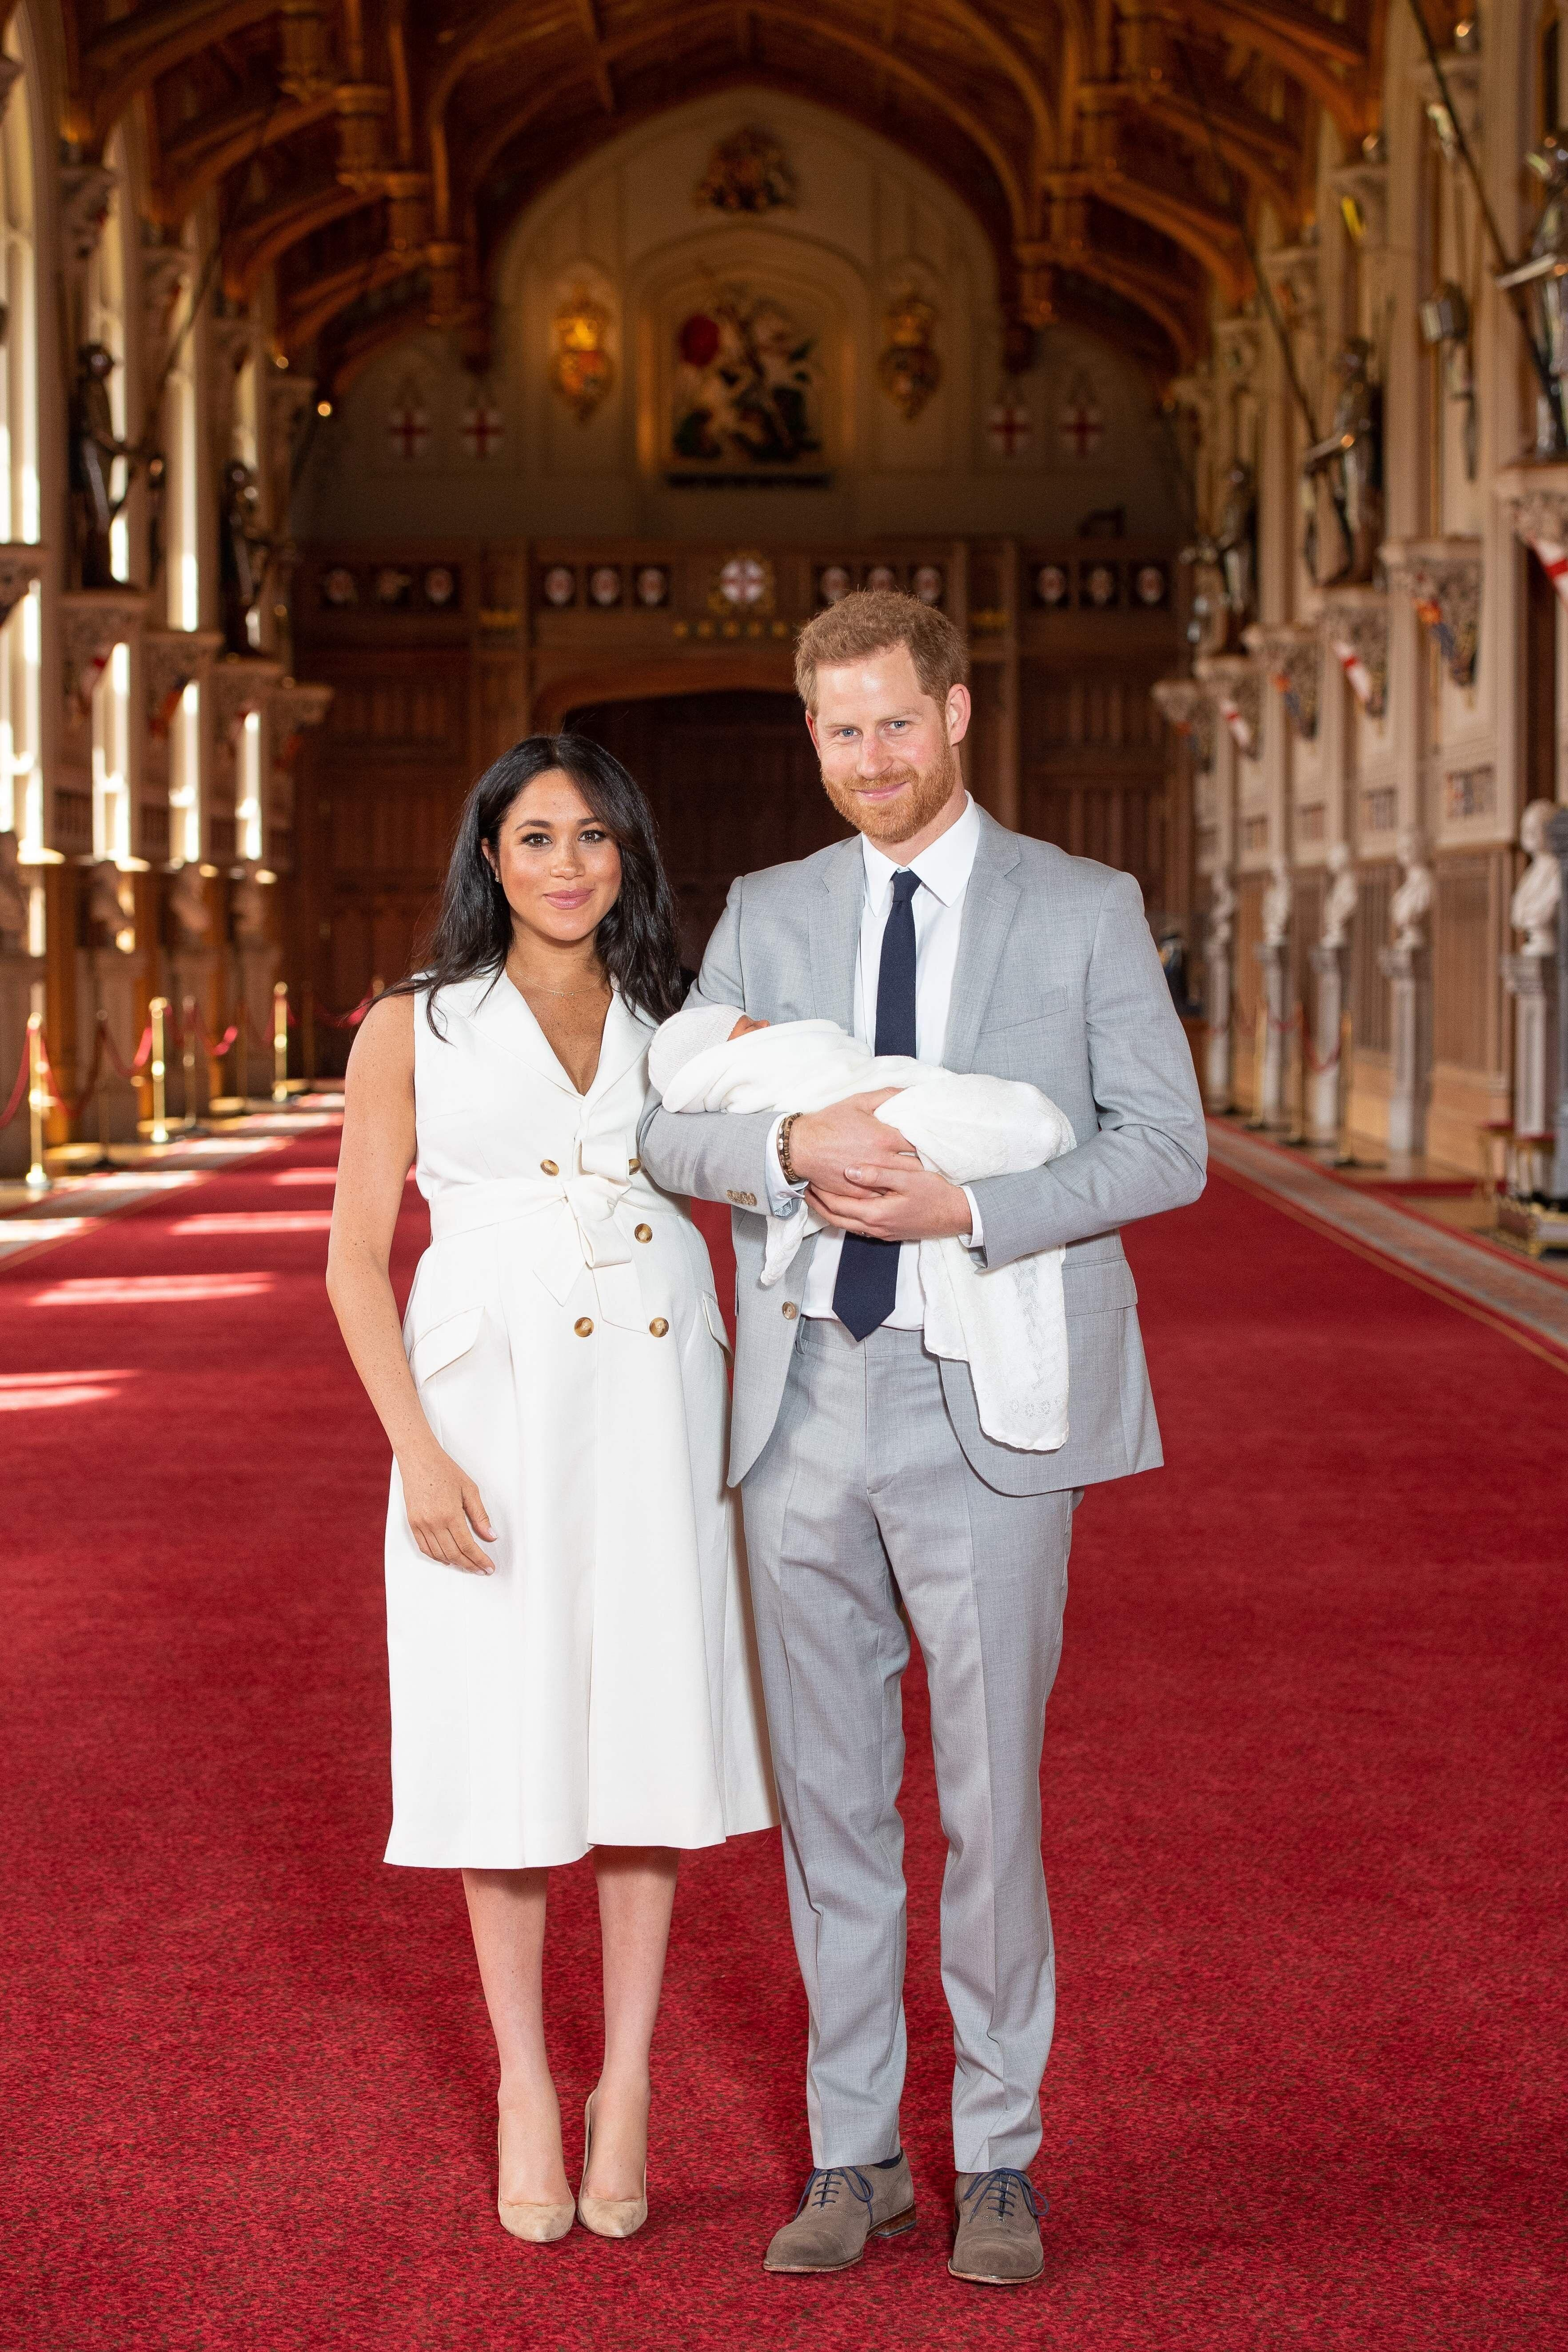 c9e7c44f86a92 Meghan Markle praised for showing off 'real' postpartum body in belted  white dress days after giving birth